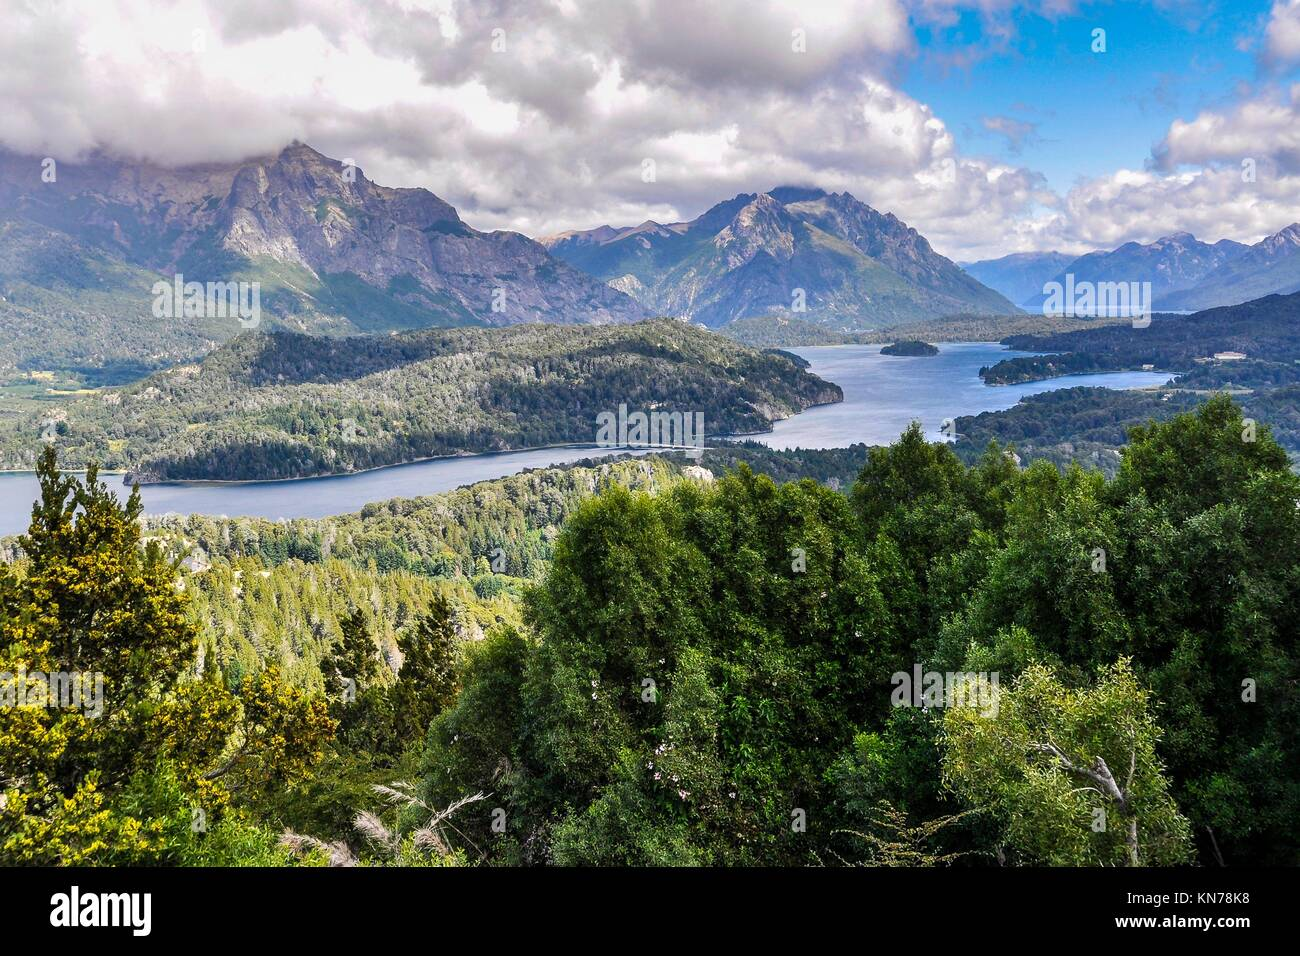 View of the lake area close to Bariloche, Patagonia, Argentina. - Stock Image